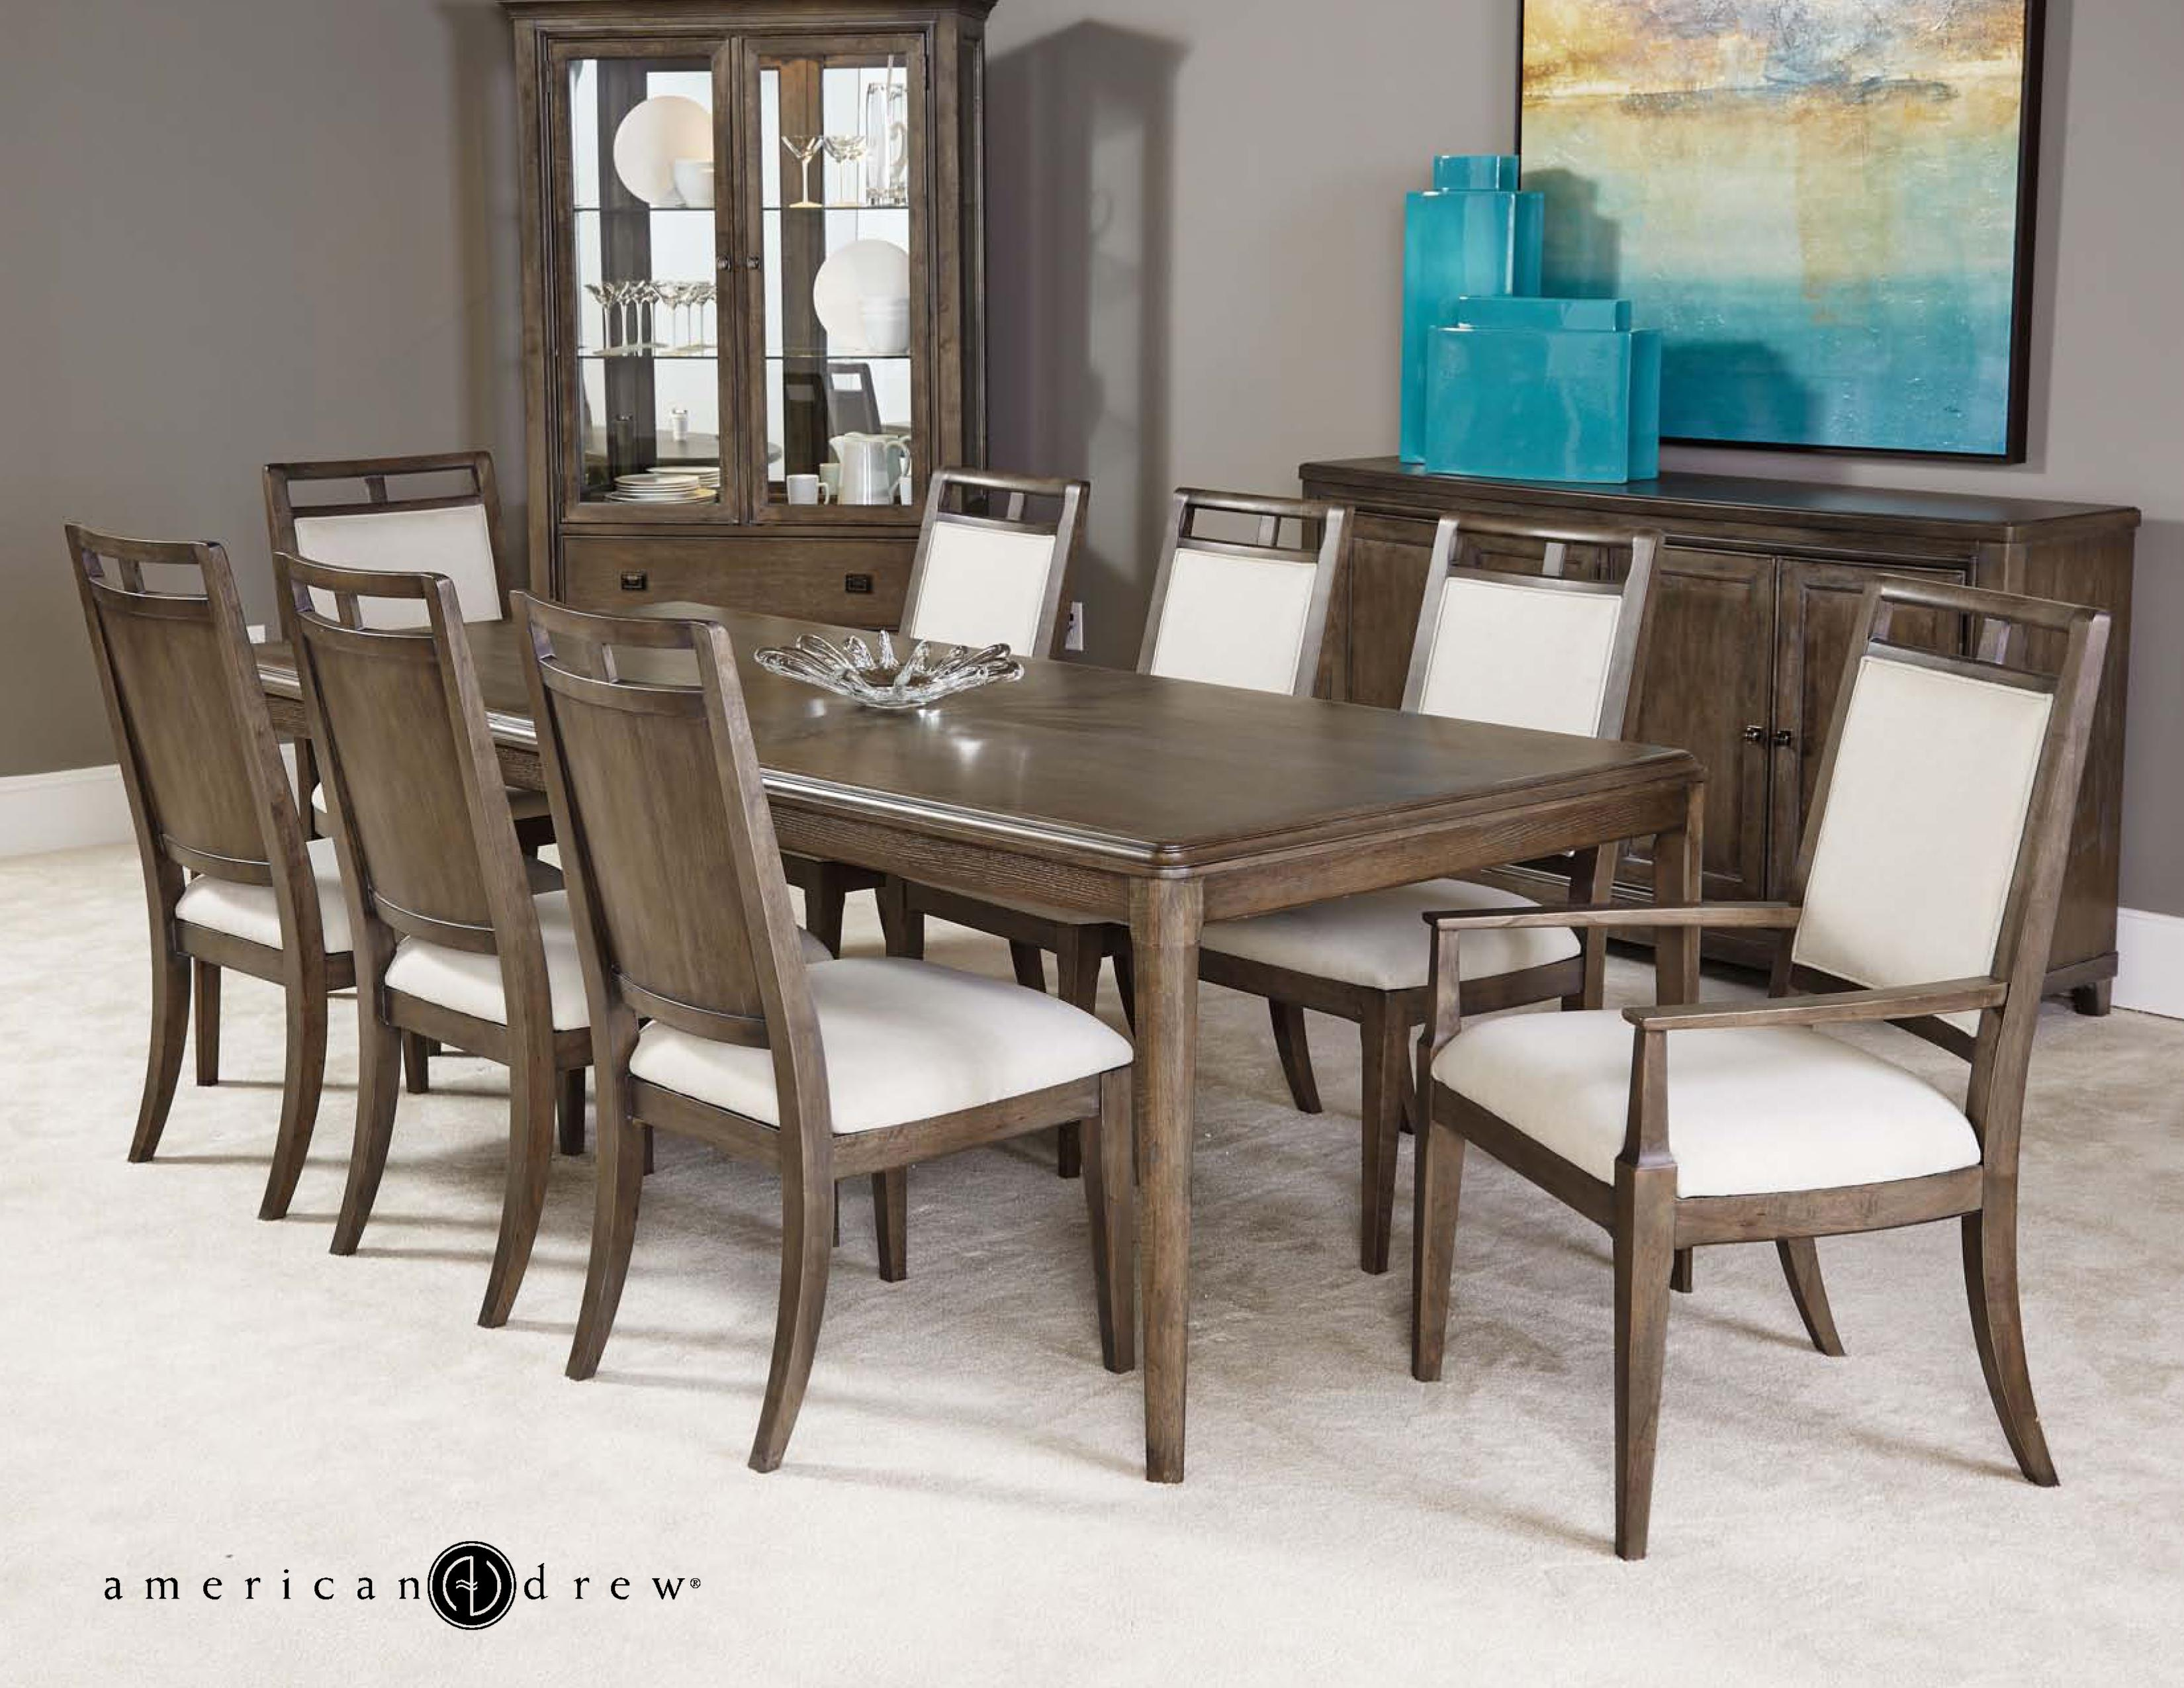 American Drew Park Studio Casual Dining Room Group - Item Number: 488 Dining Room Group 1